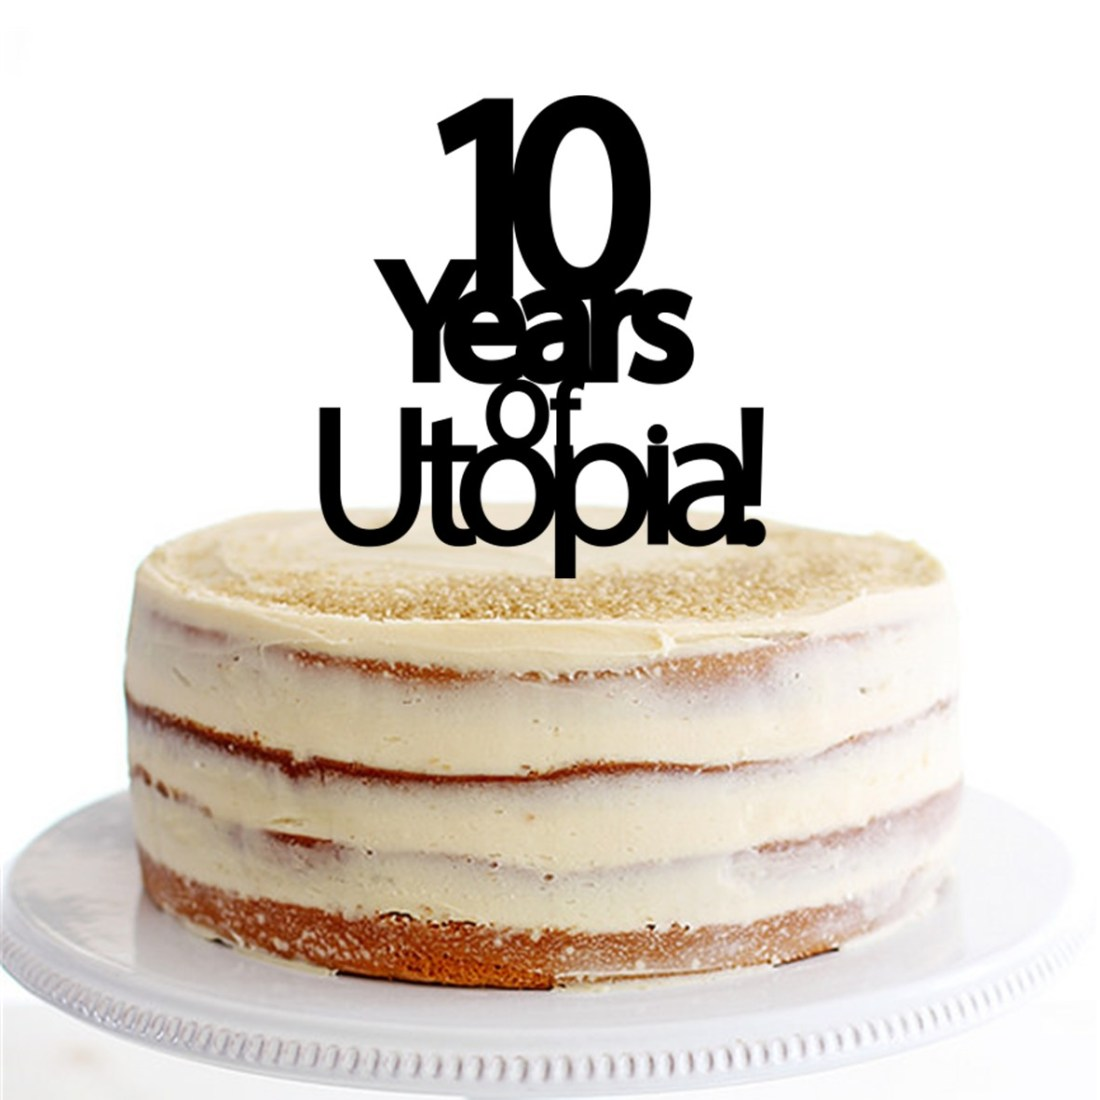 10 Years of Business Cake Topper